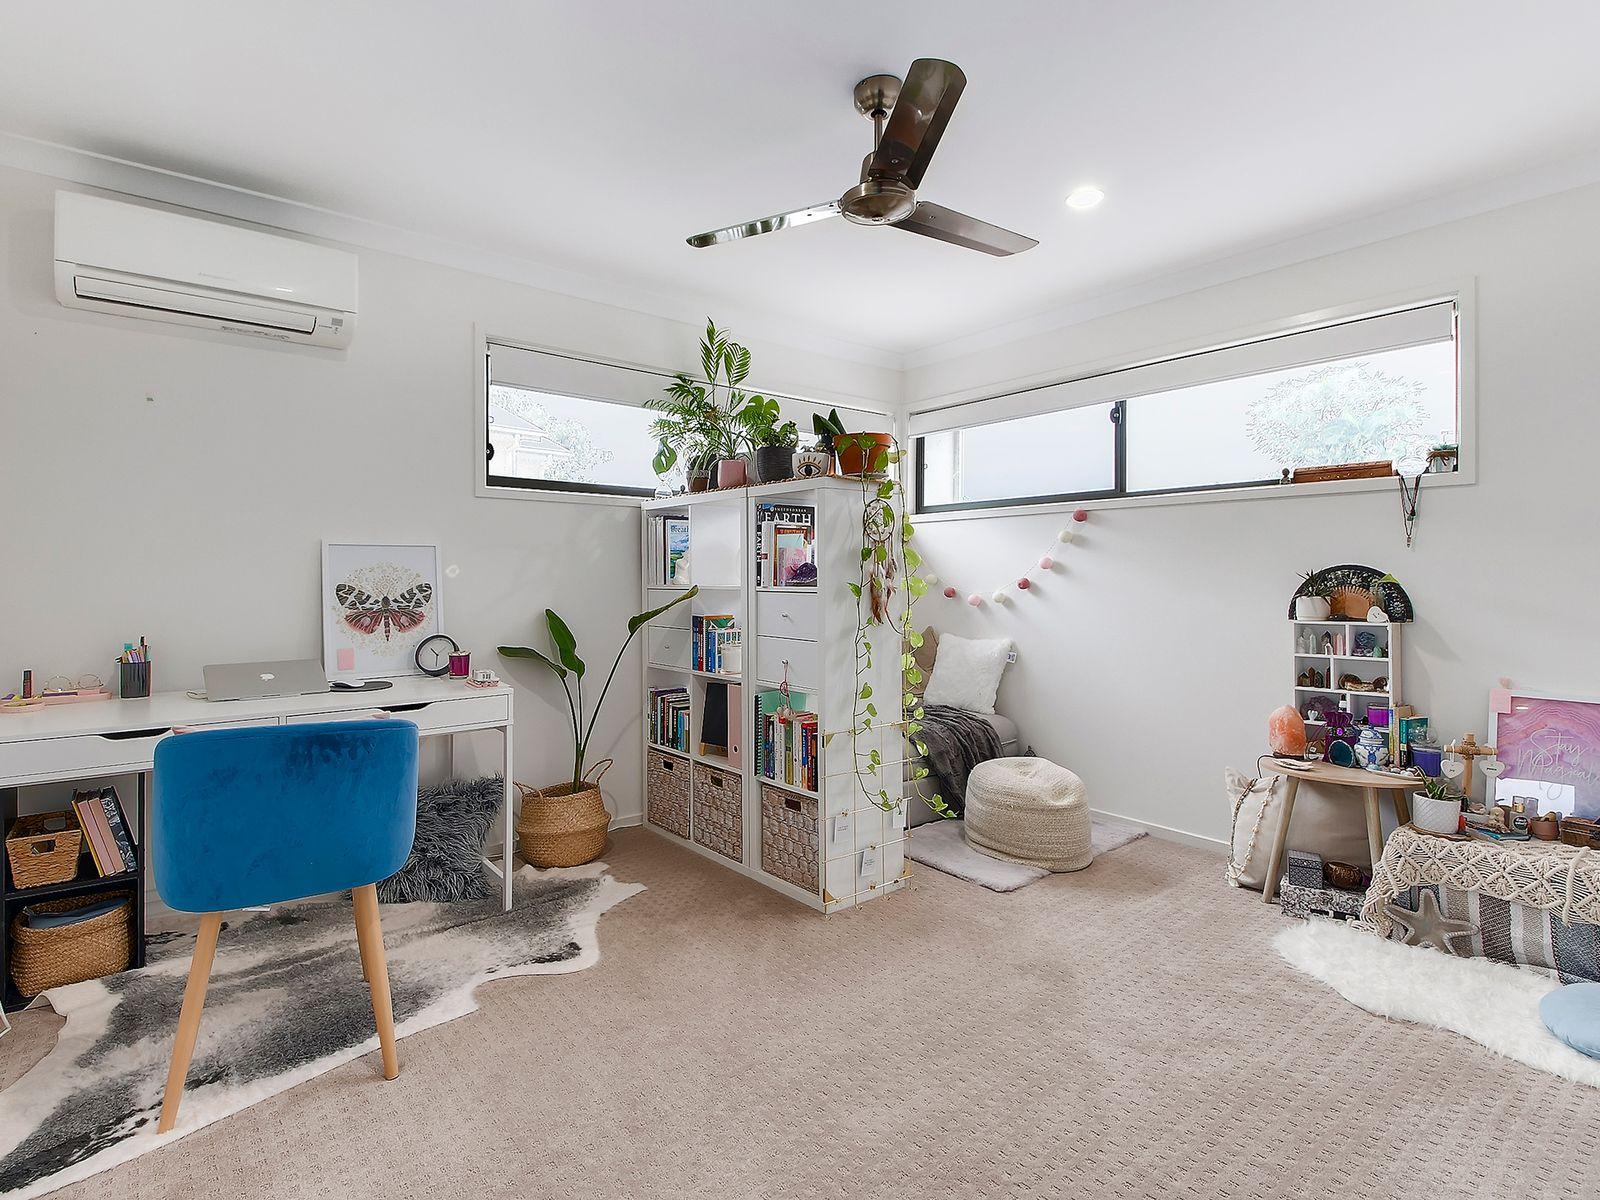 2/28 Alutha Road, The Gap, QLD 4061